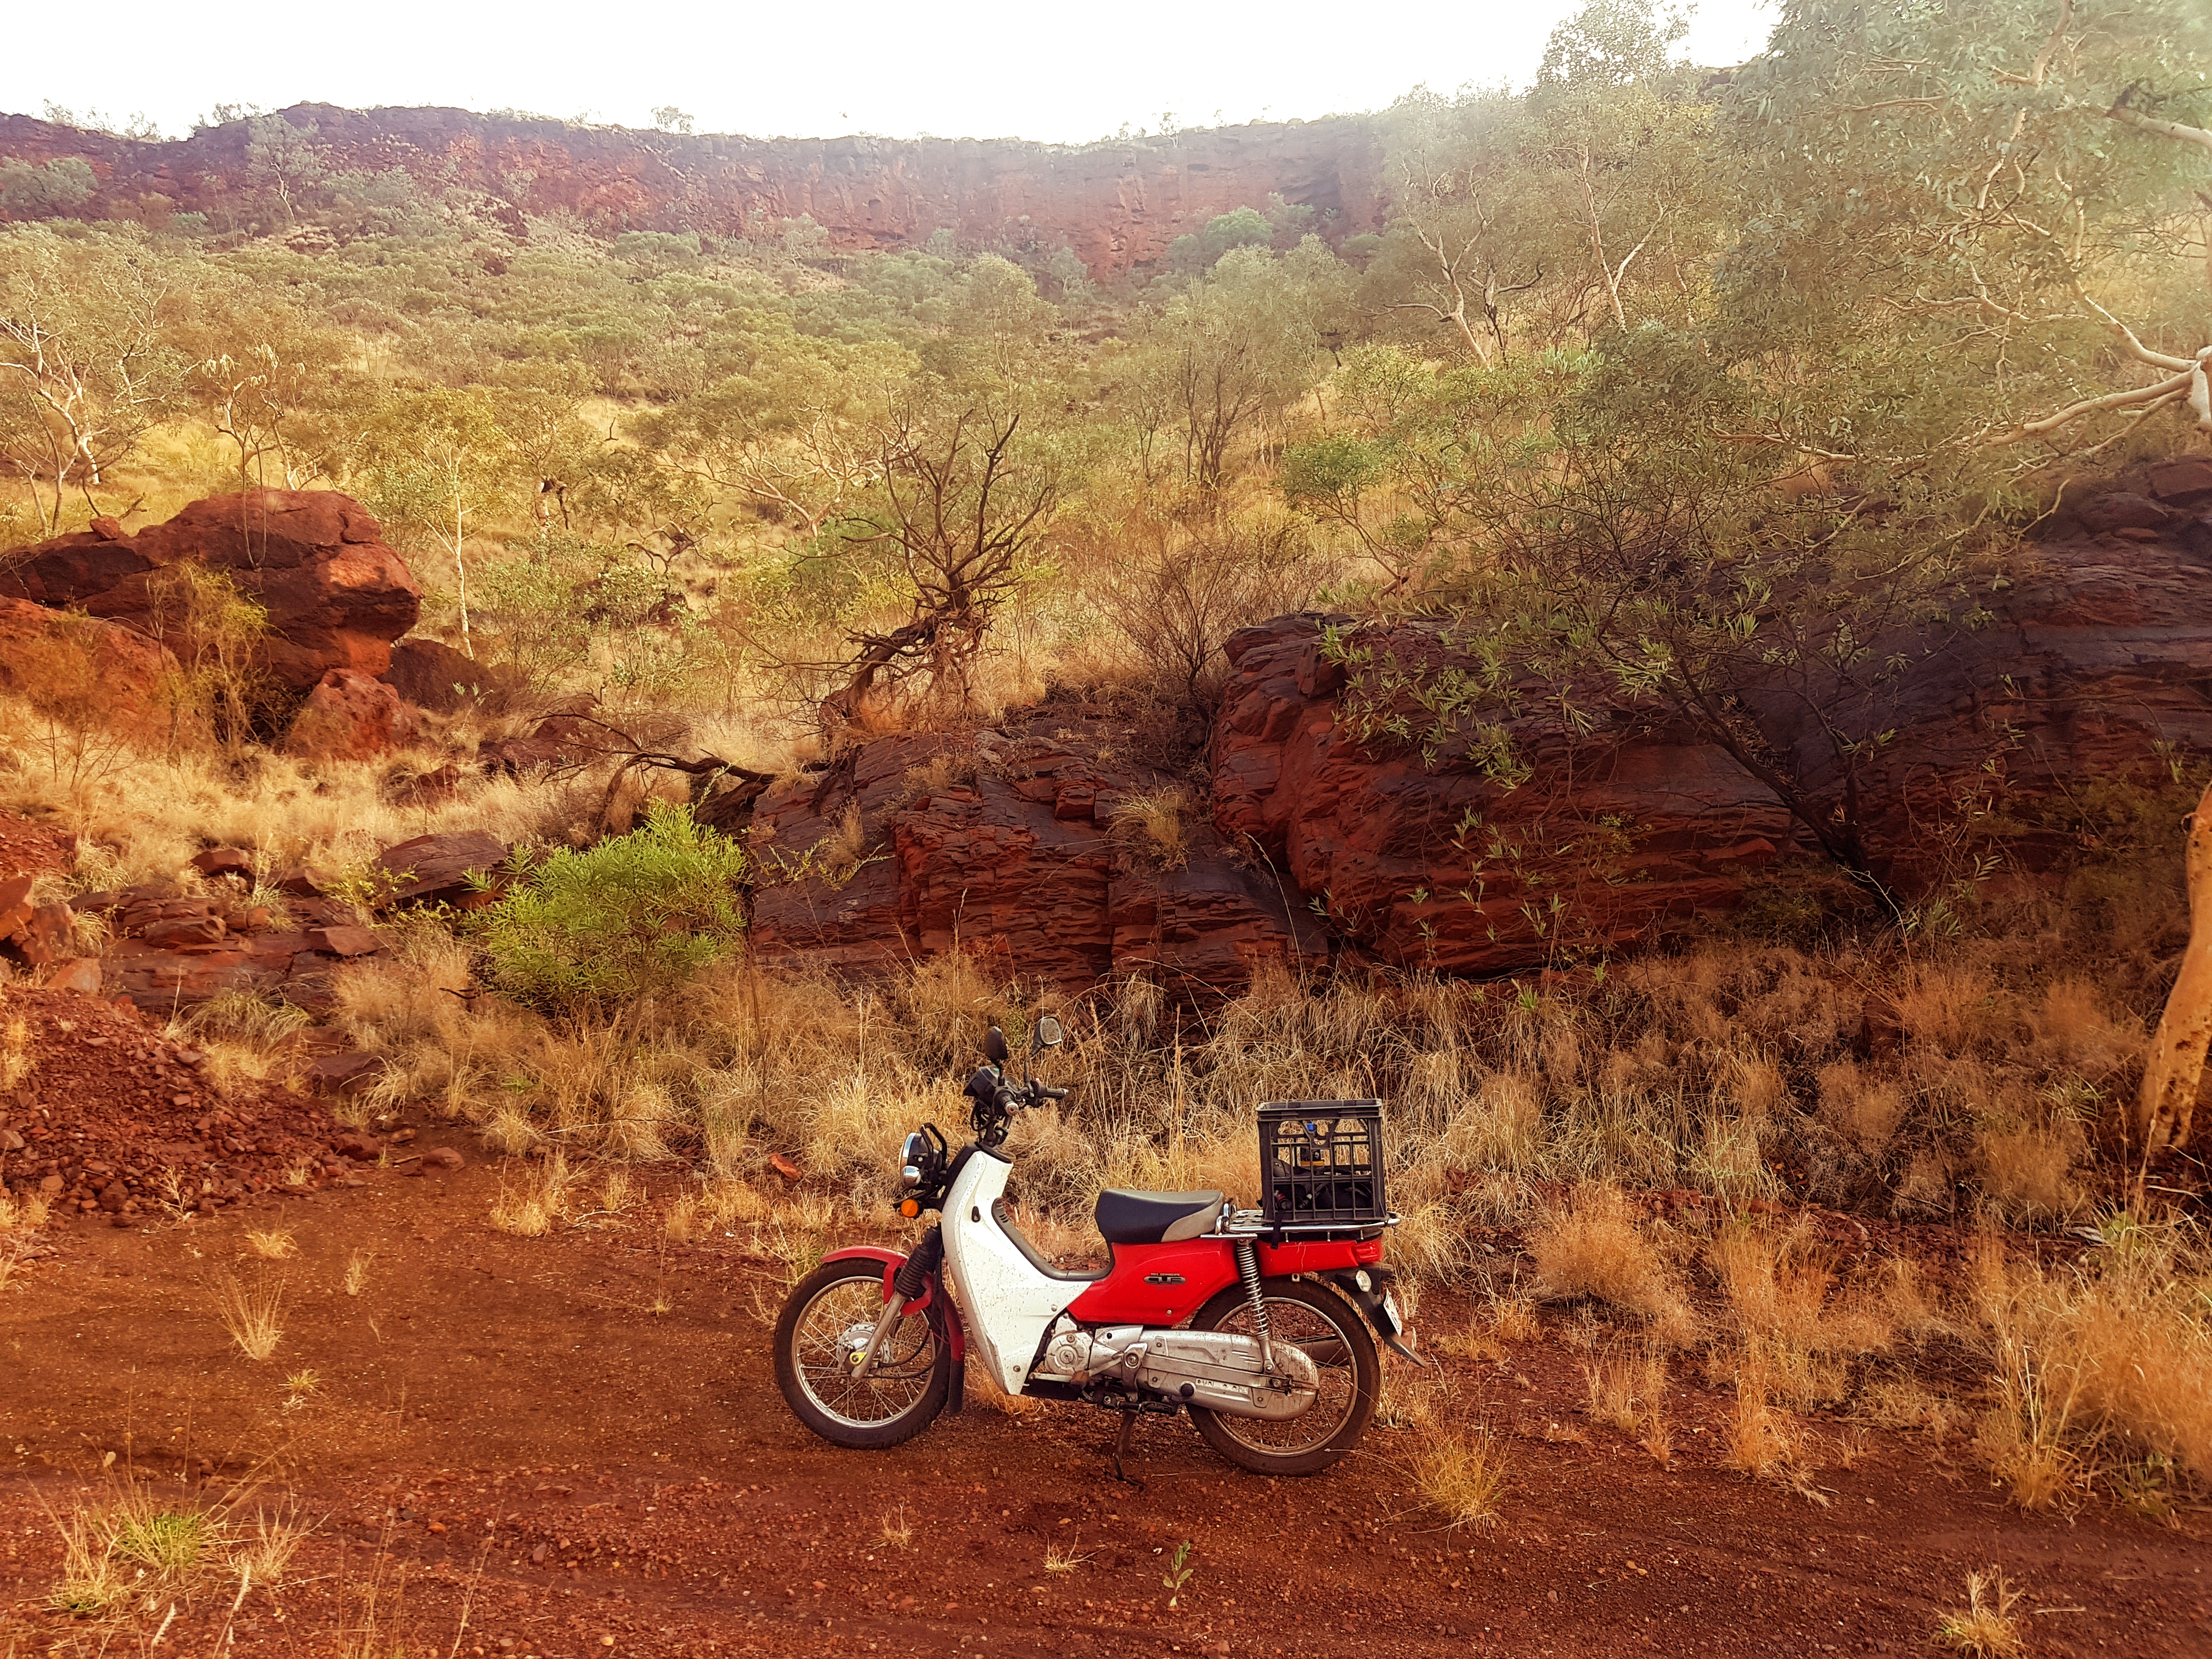 Postie Bike in Tom Price Mt Nameless